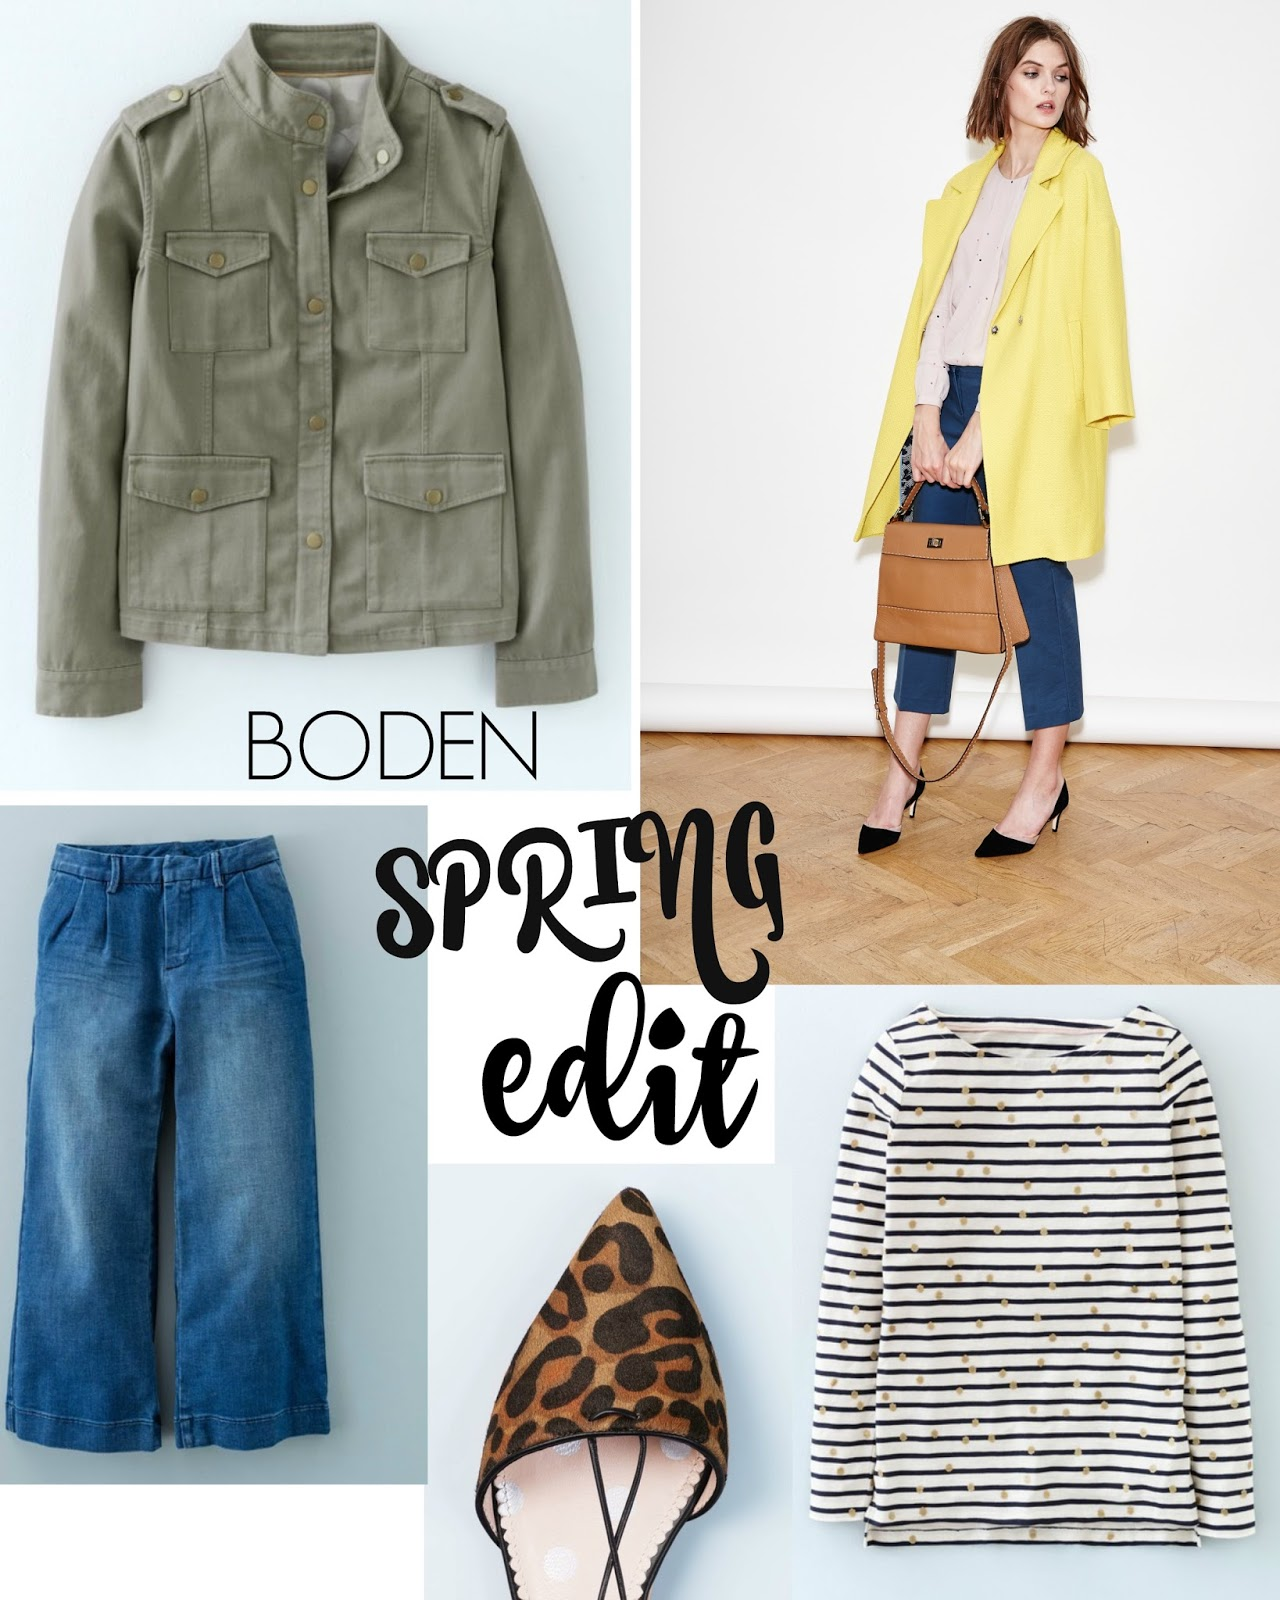 mamasVIB || V. I. BUYS: My Spring high street edit - the pieces you need to update your wardrobe FAST